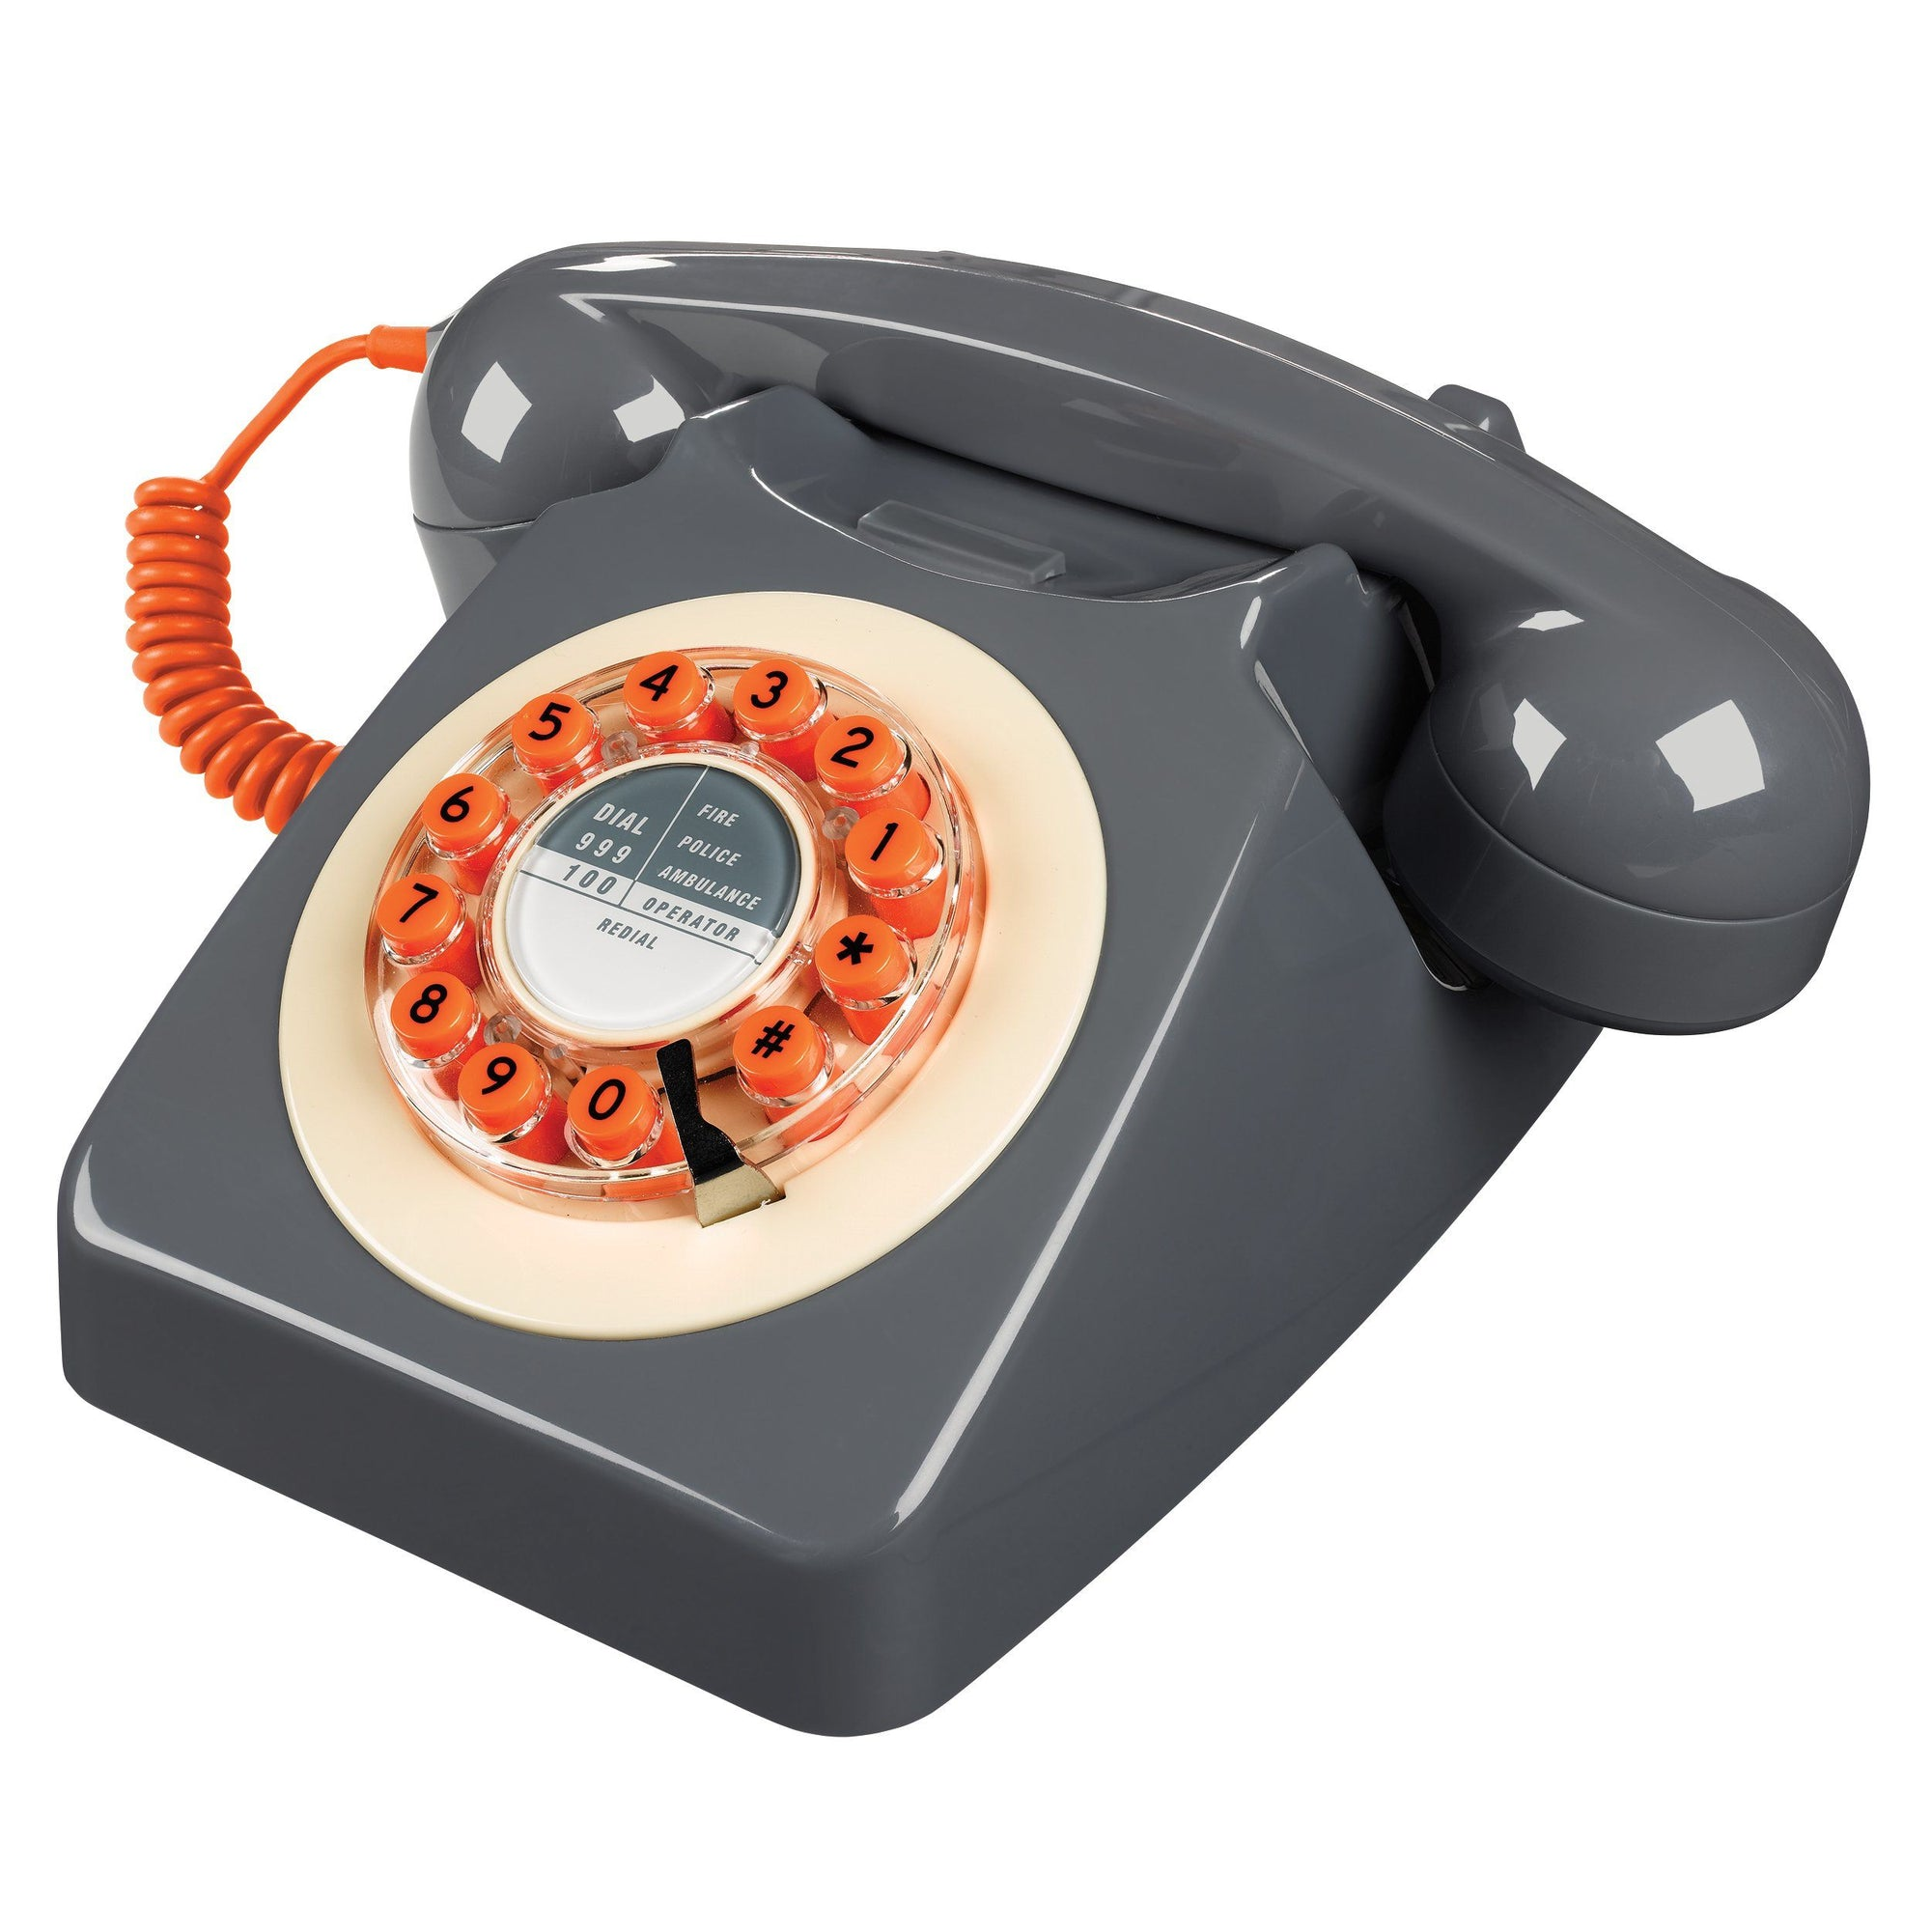 Concrete Grey 746 Telephone Classic 1960's Design - BouChic